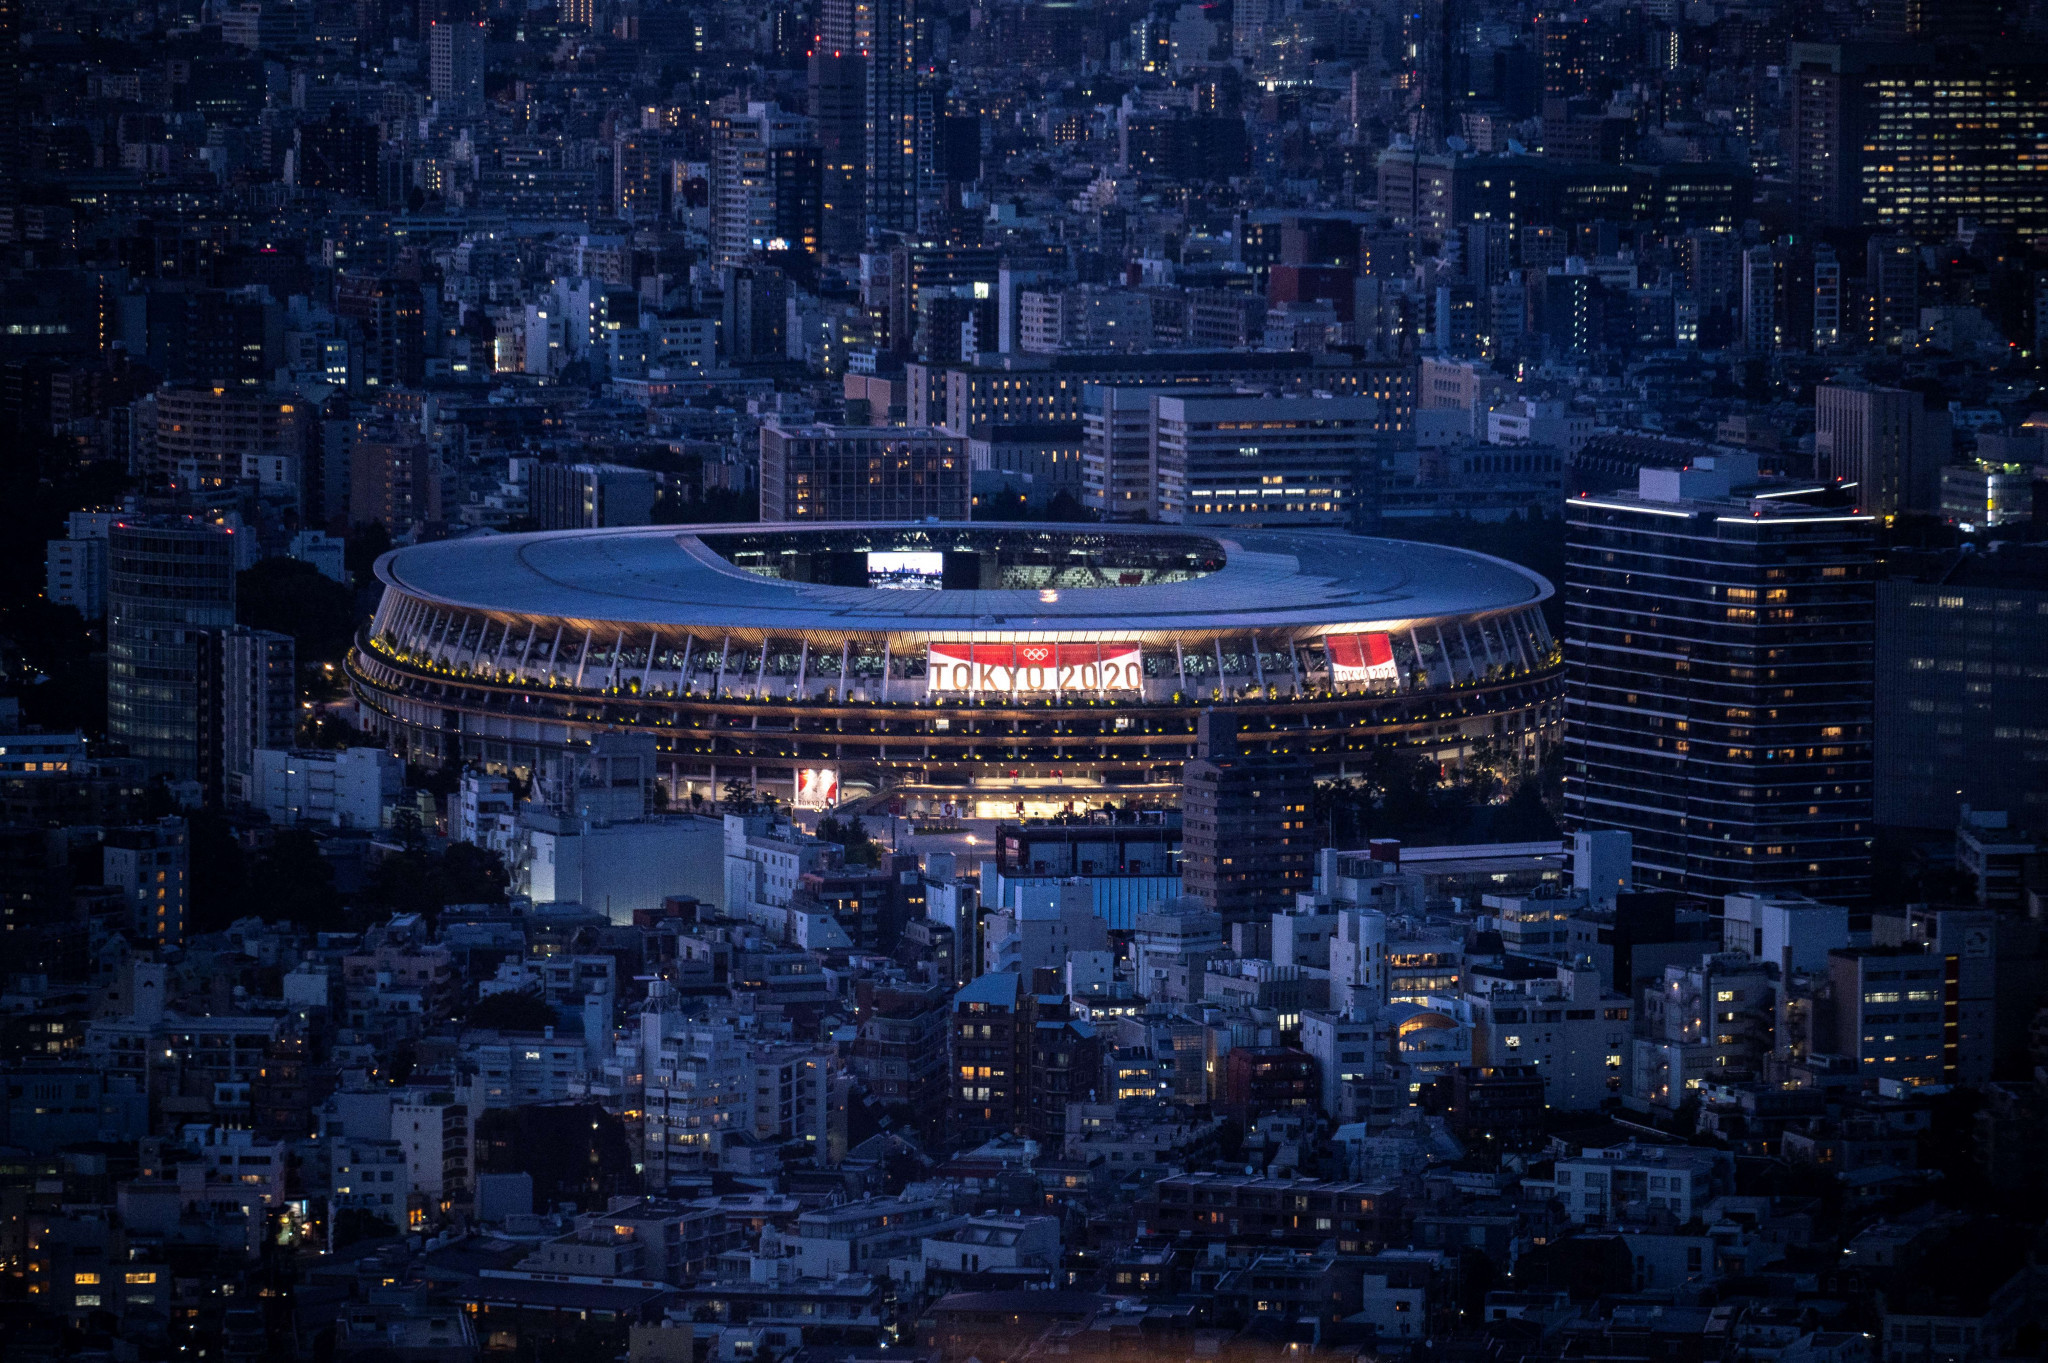 Japan's National Stadium is set to stage the Opening Ceremony of the Olympics ©Getty Images